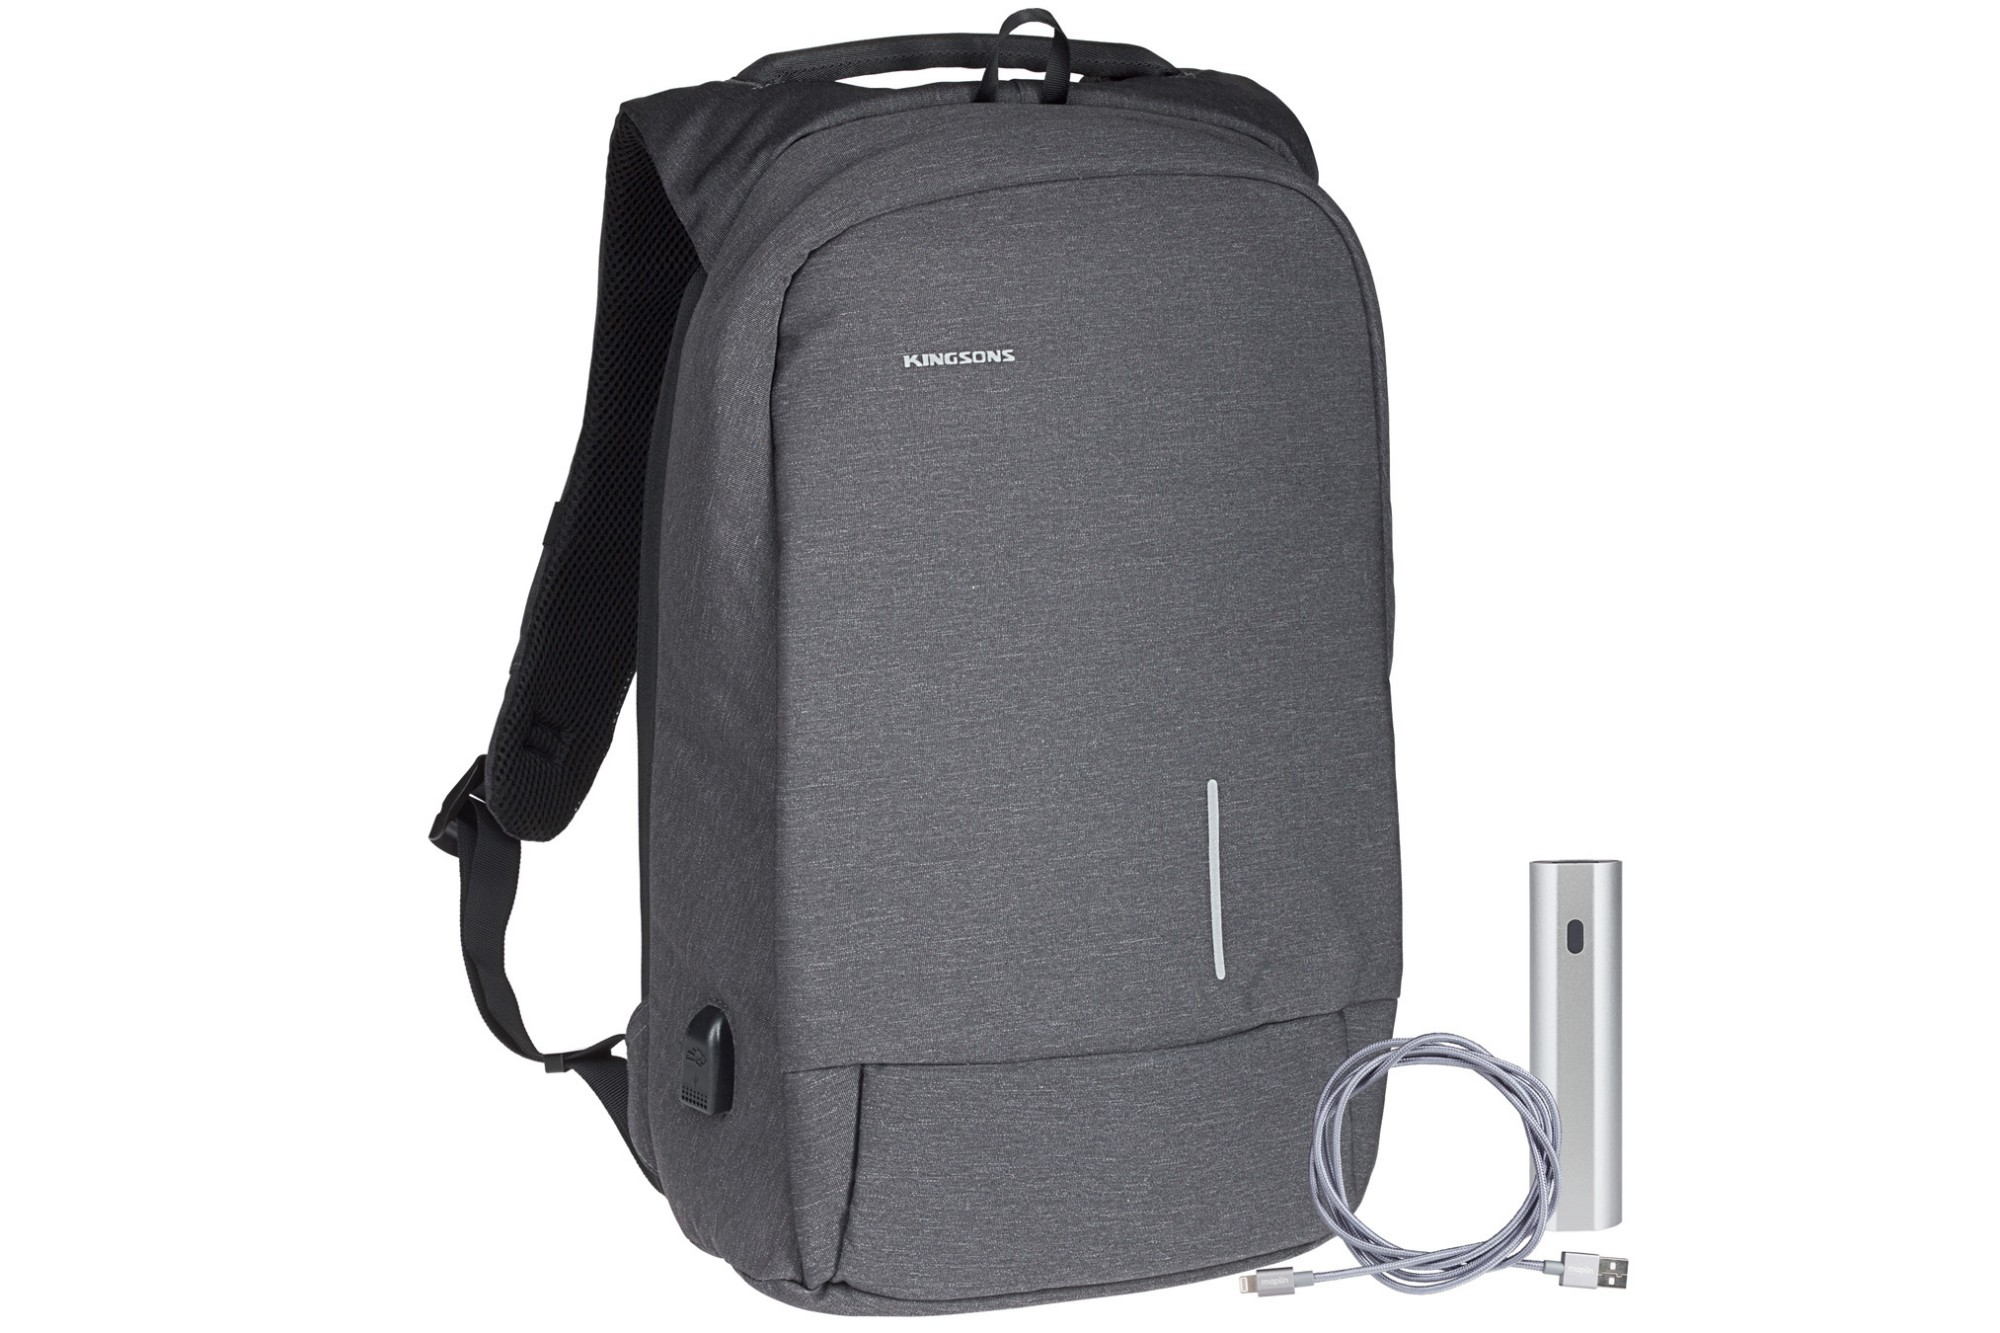 "Kingsons Smart Anti Theft USB Series 15.6"" Laptop Backpack and Power Bank Bundle - Dark Grey"